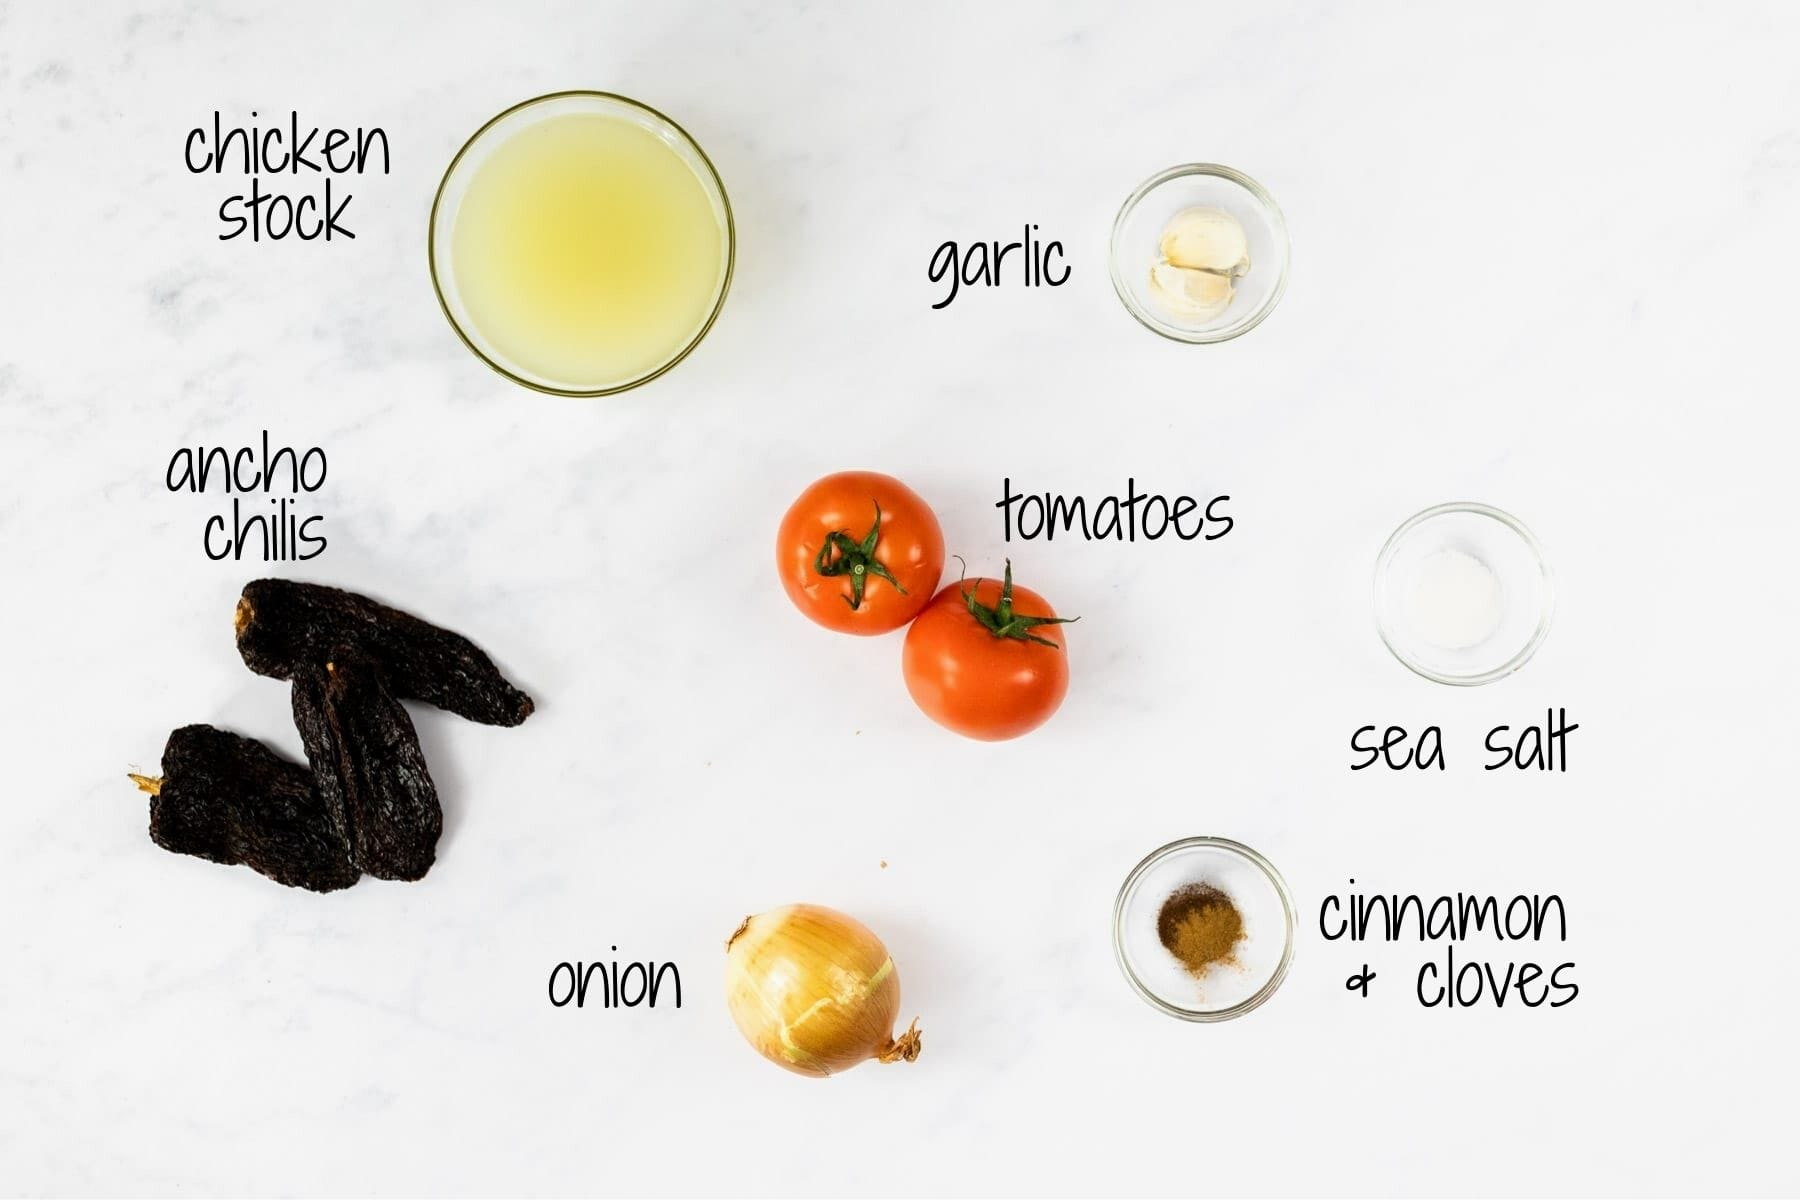 Ingredients for enchilada sauce with text labels.